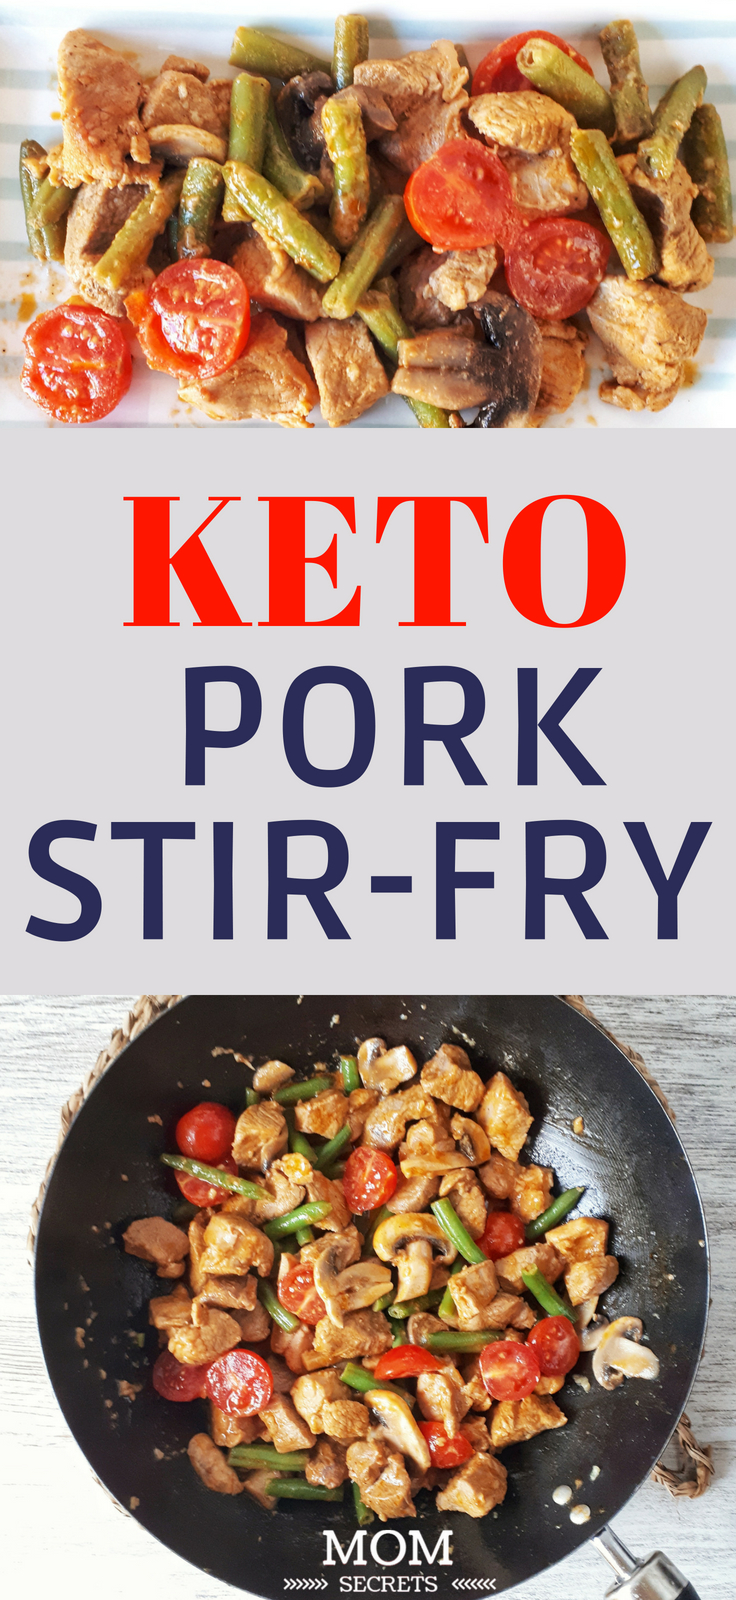 Today I'm bringing you this quick keto pork sit fry recipe using fresh vegetables like green beans, mushroom and cherry tomatoes. It's an easy, simple, low carb and paleo whole family meal!